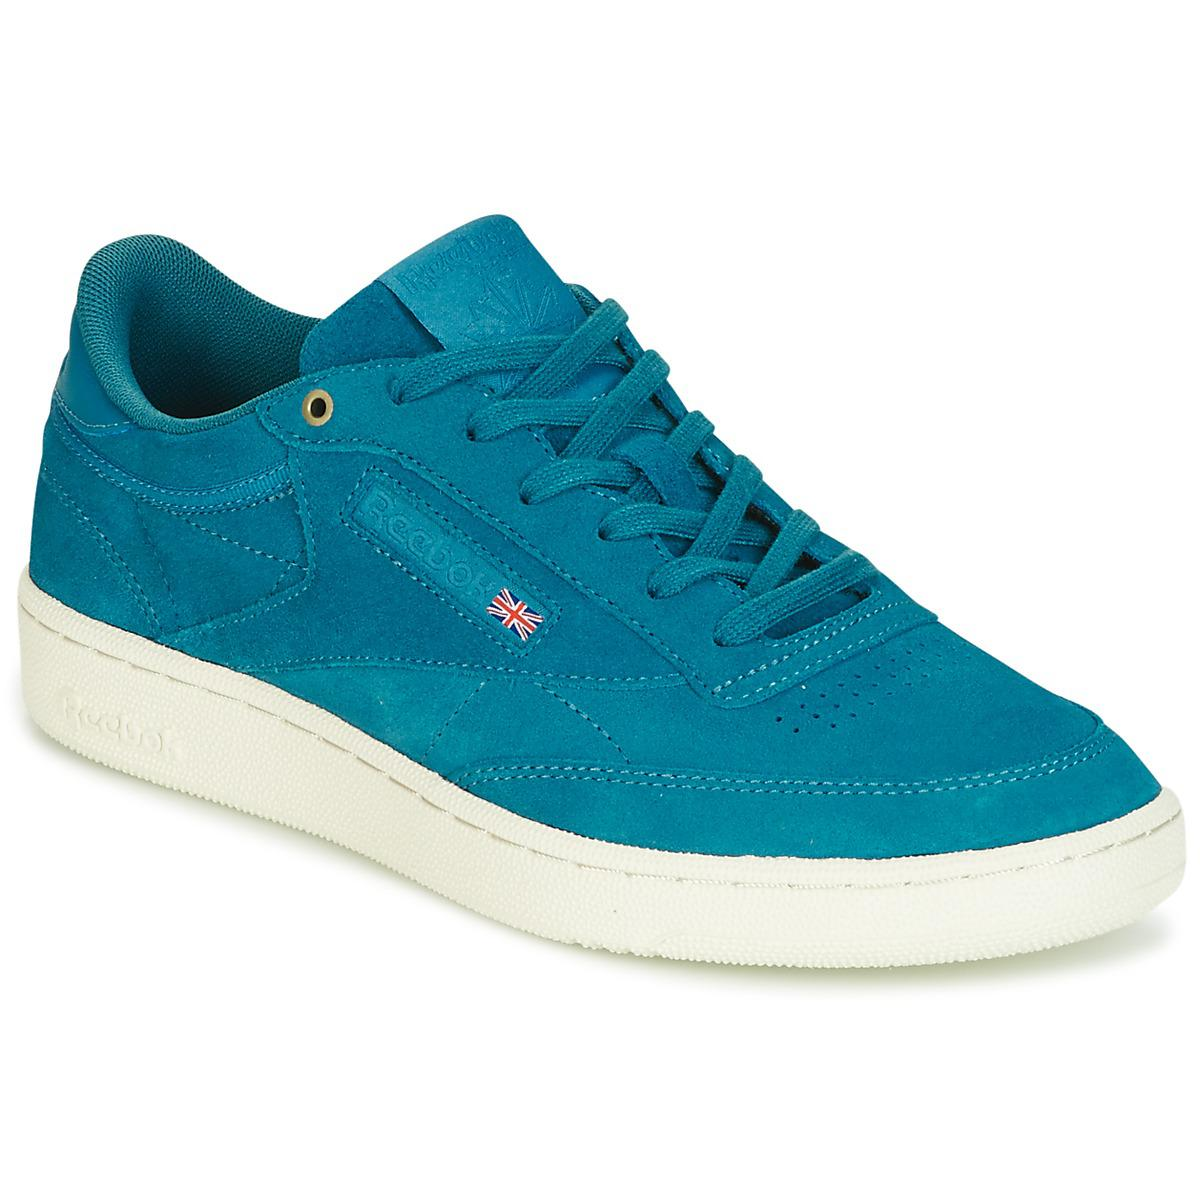 906288d590b Reebok Club C 85 Mcc Shoes (trainers) in Blue for Men - Lyst